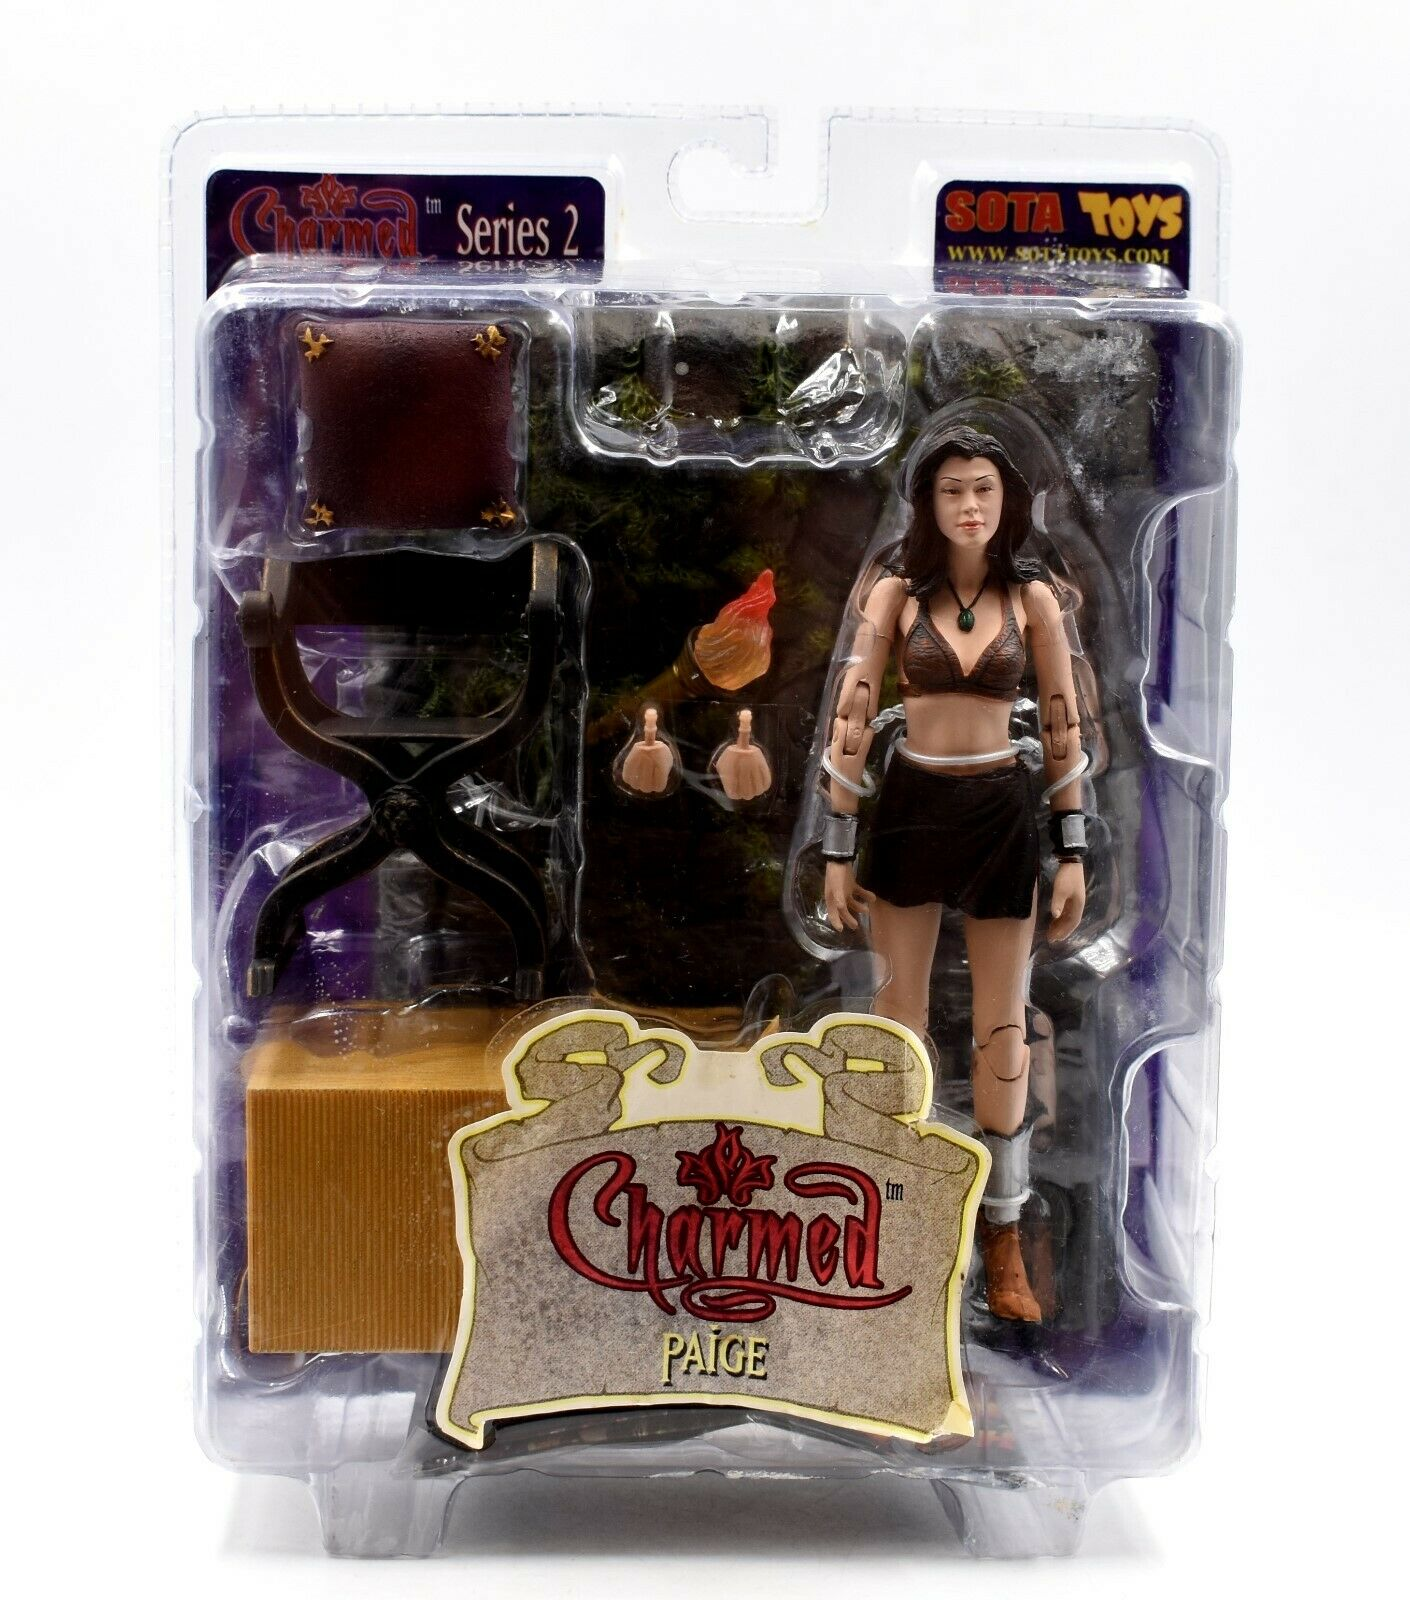 SOTA Toys - Charmed Series 2 - Paige Action Figure